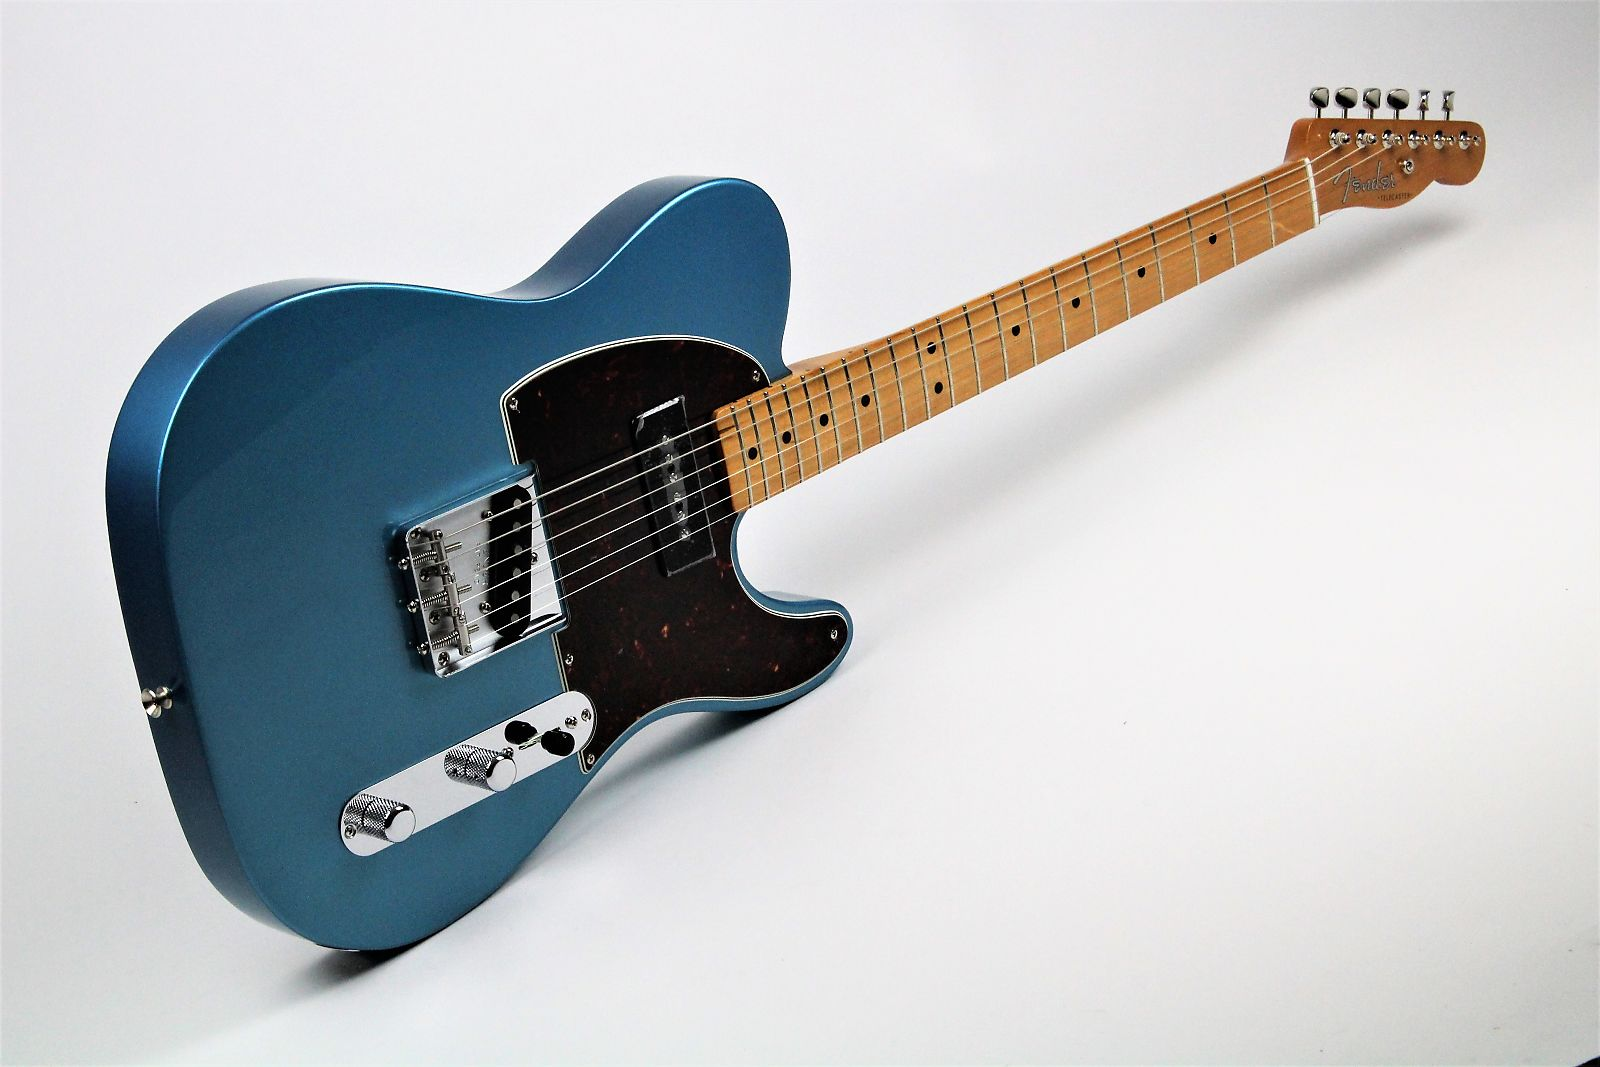 fender ltd limited 50 s telecaster p90 lake placid blue gerald musique. Black Bedroom Furniture Sets. Home Design Ideas